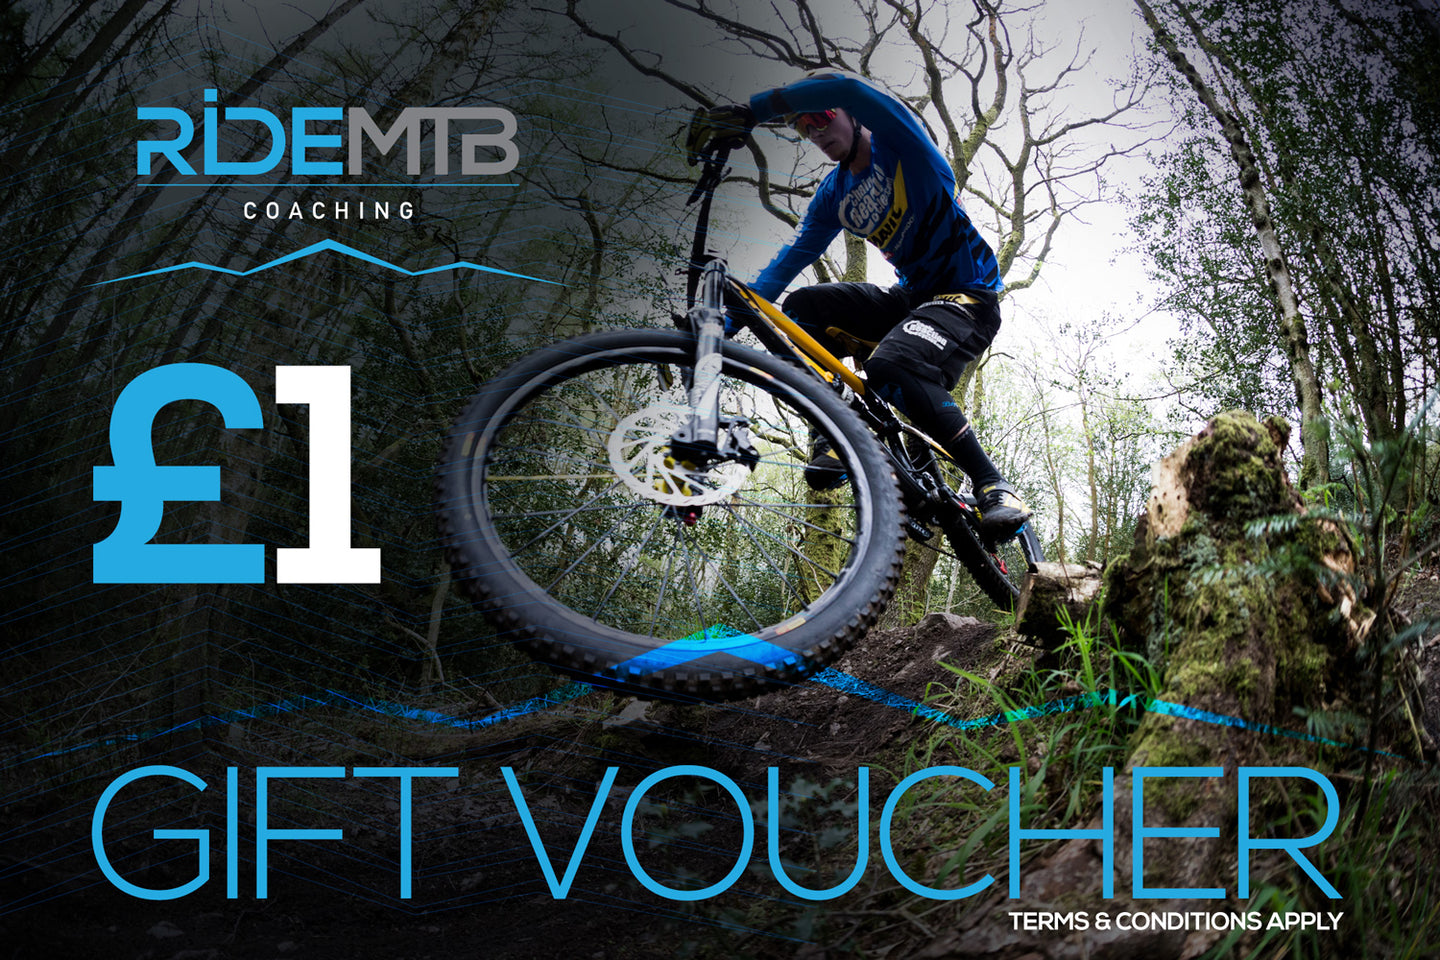 RideMTB Coaching Gift Voucher £1